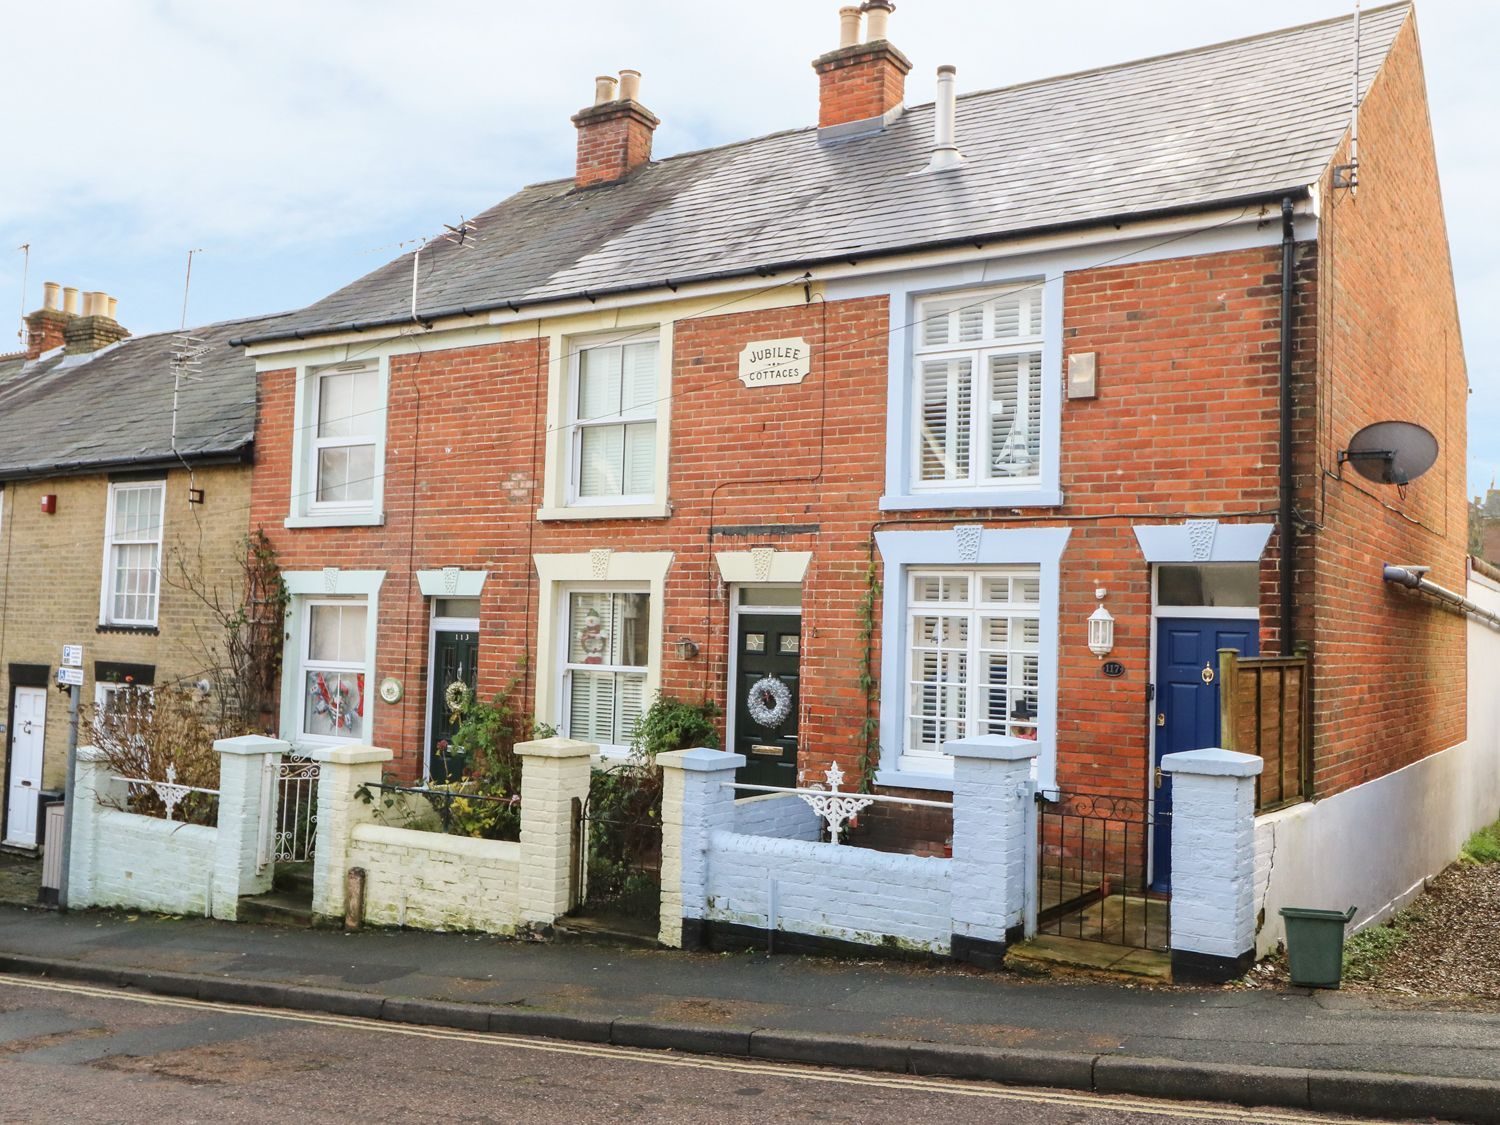 117 Jubilee Cottages photo 1